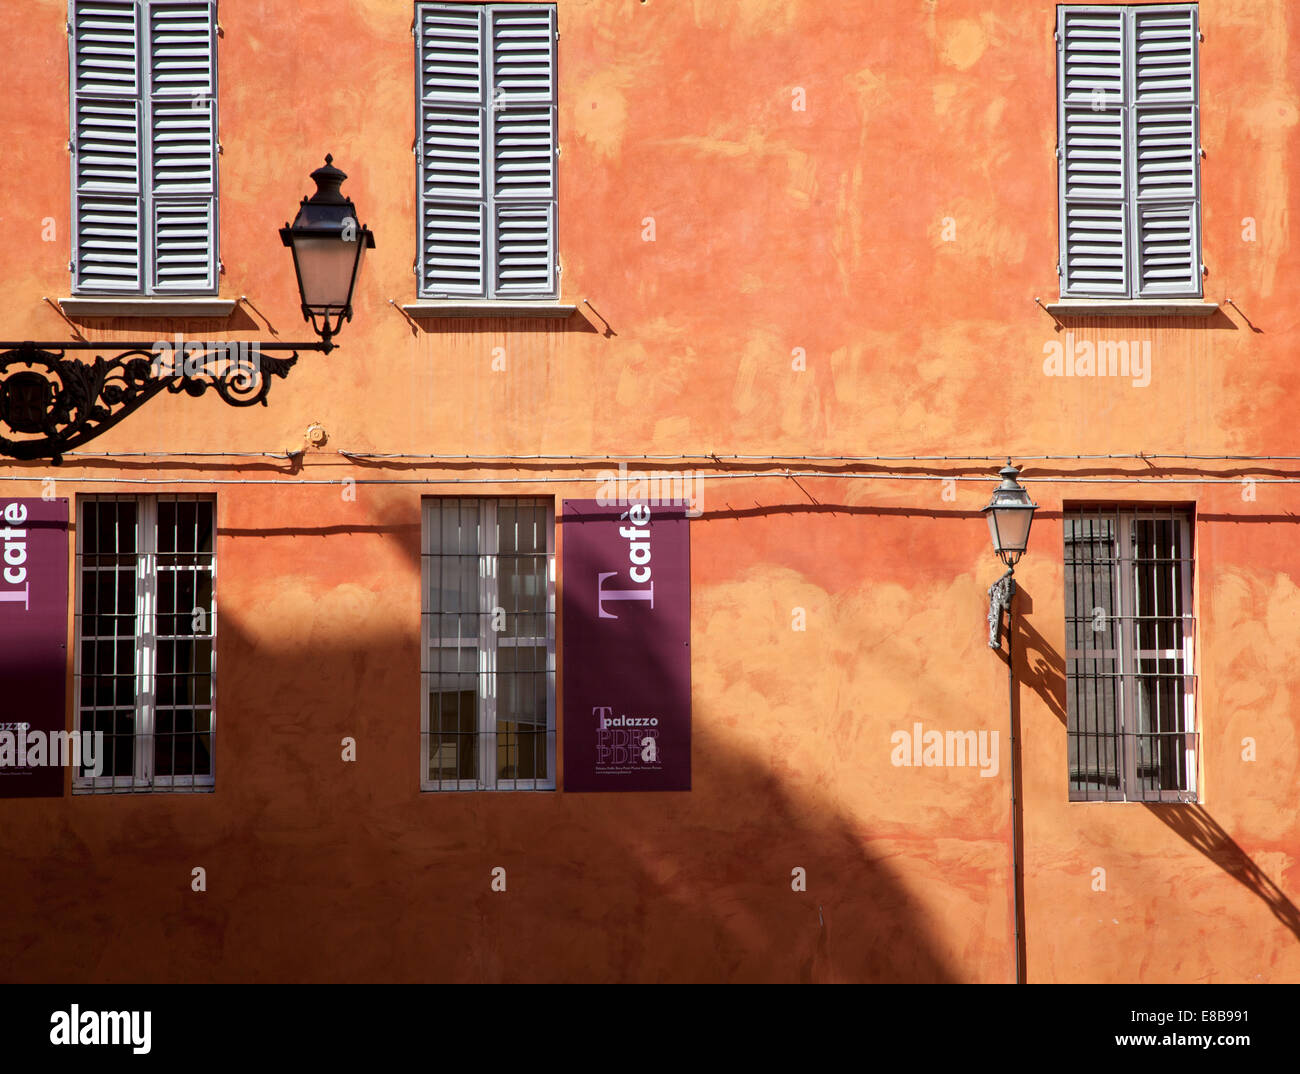 Richly coloured building in Parma, Emilia-Romagna, Italy - Stock Image